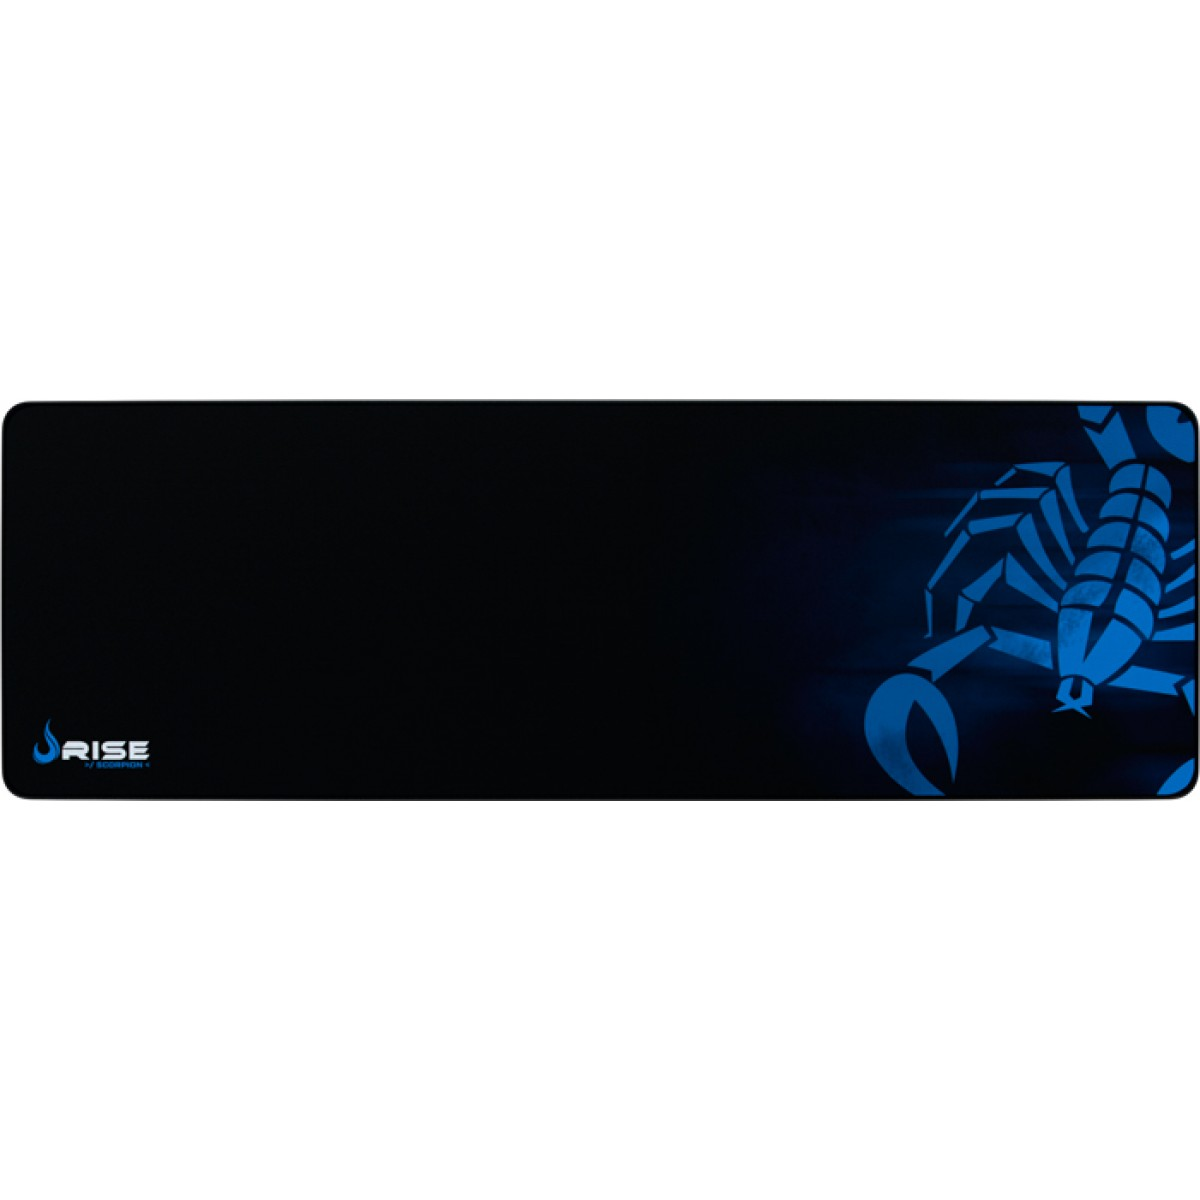 Mouse Pad Gamer Rise Mode Scorpion, Extended, Borda Costurada, RG-MP-06-SK